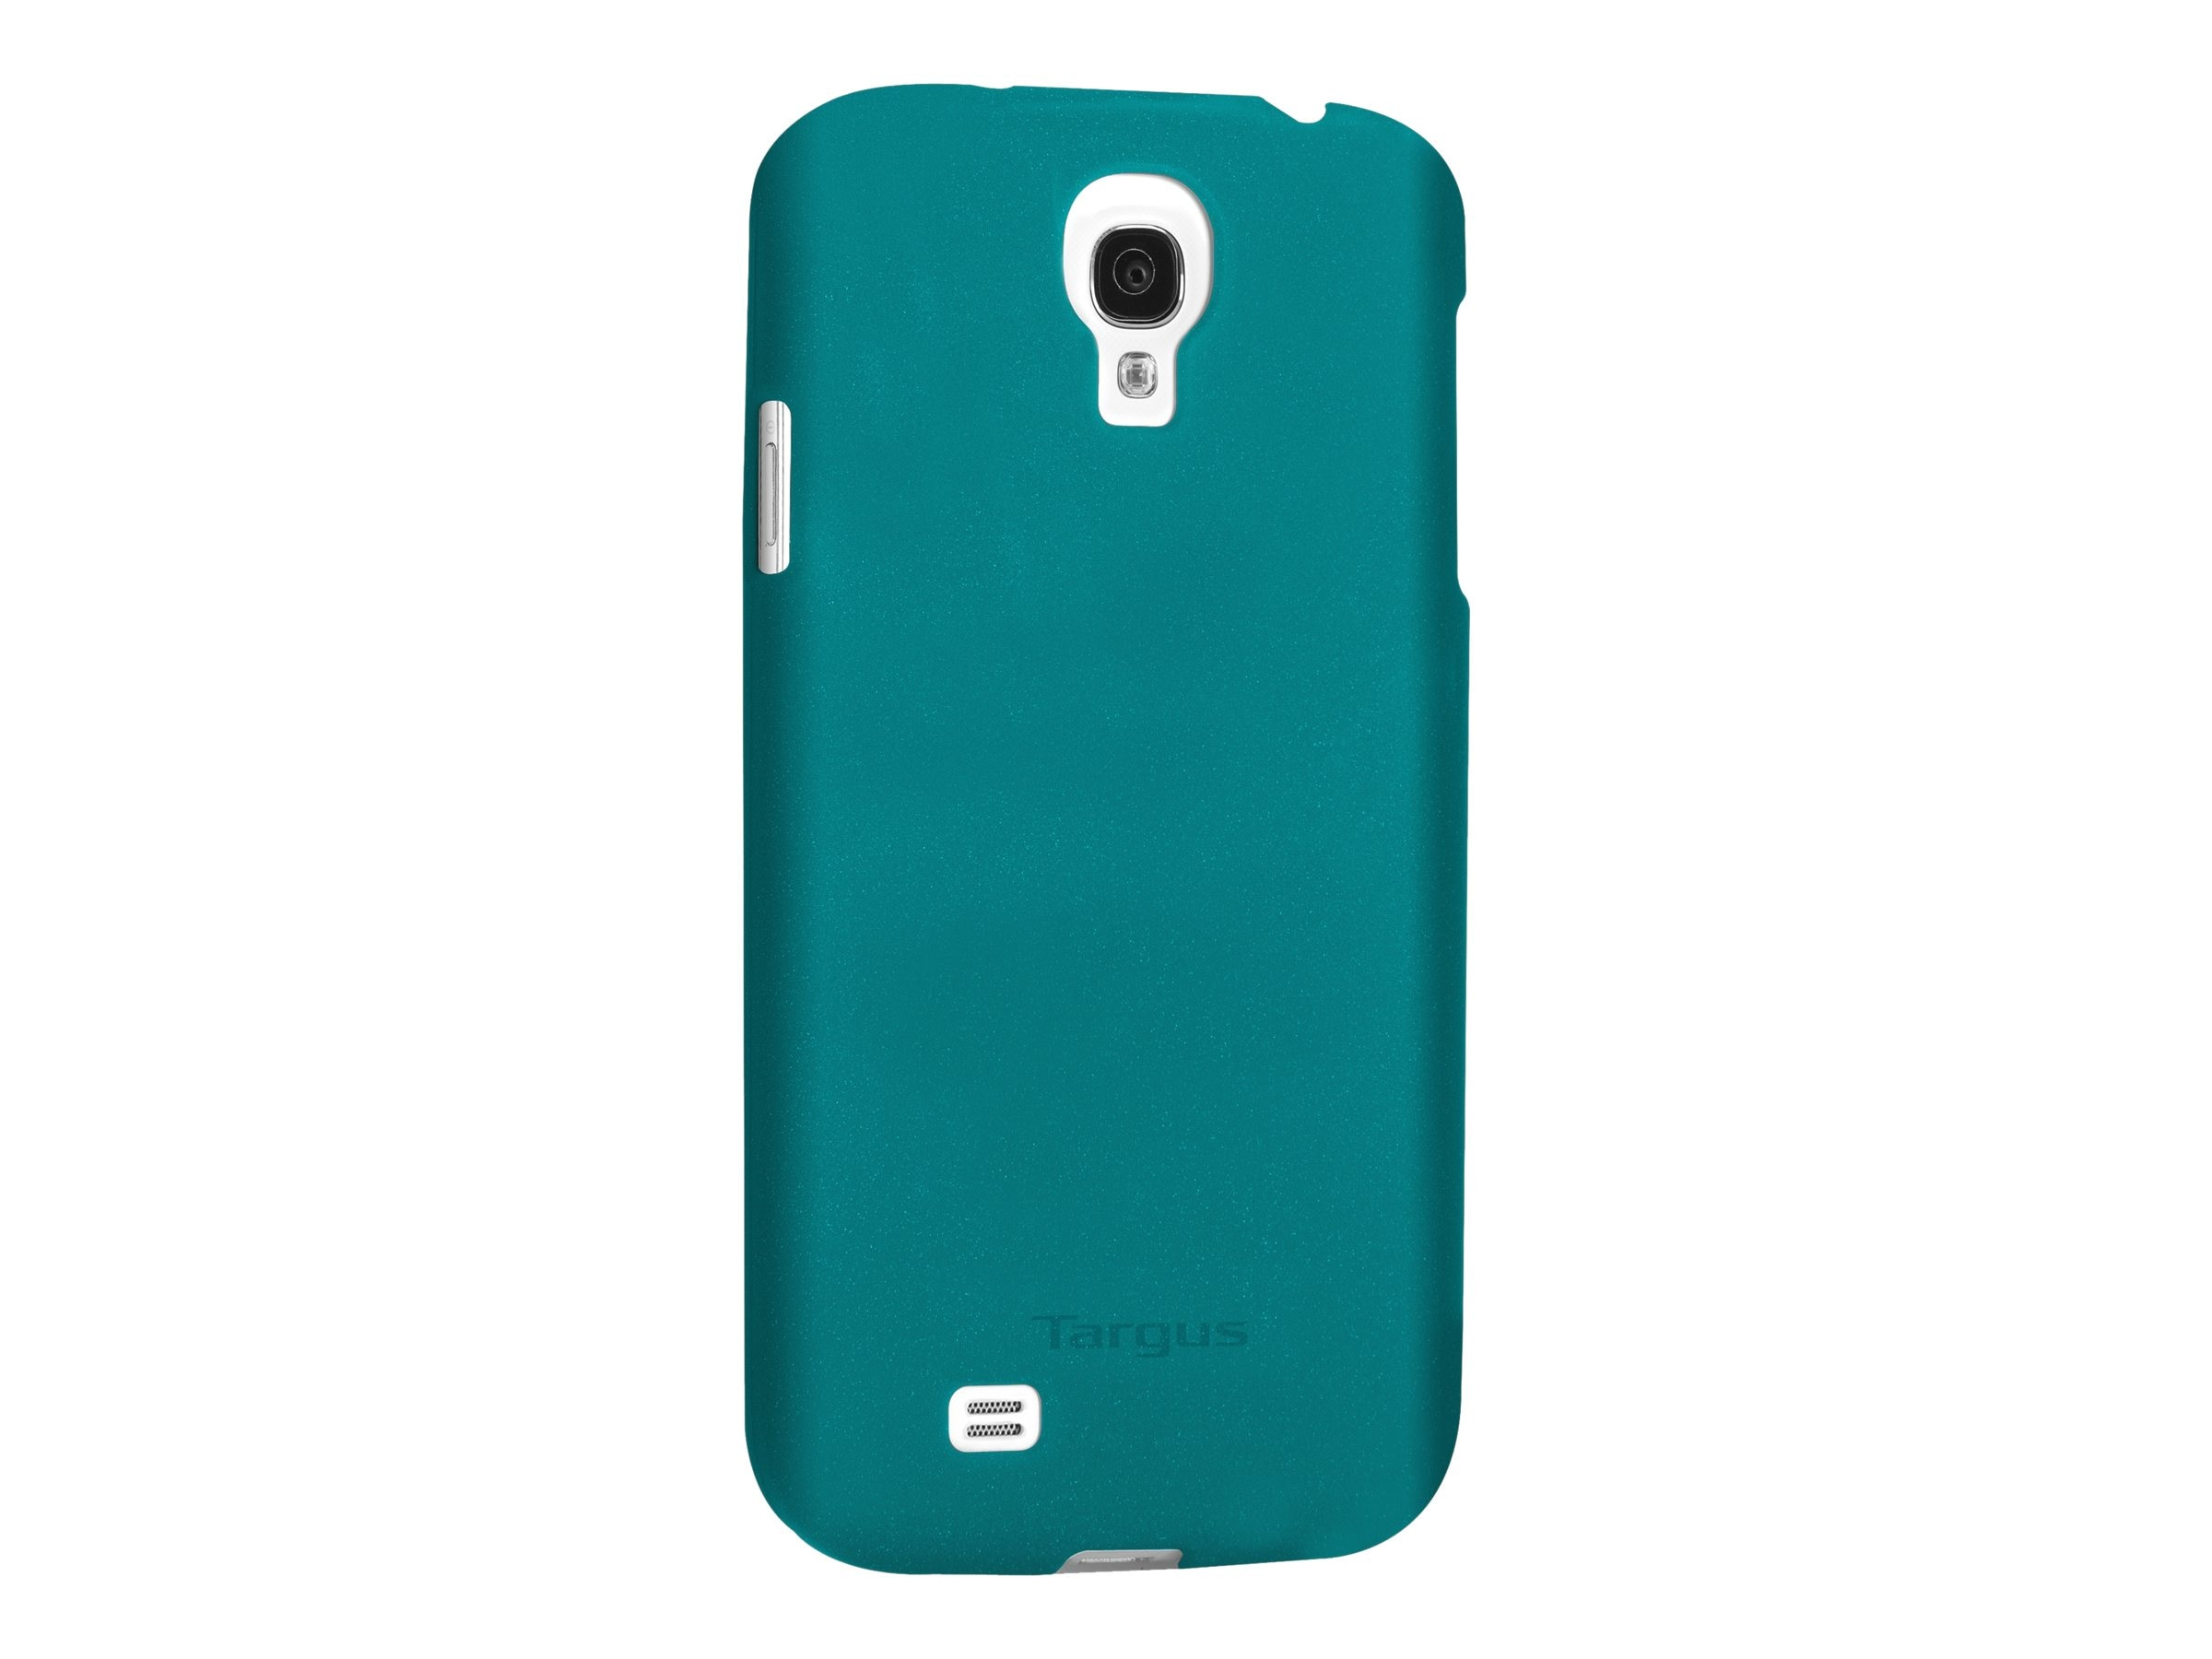 Targus Samsung Galaxy S4 Snap  shell, TFD03702US, 15724298, Carrying Cases - Phones/PDAs